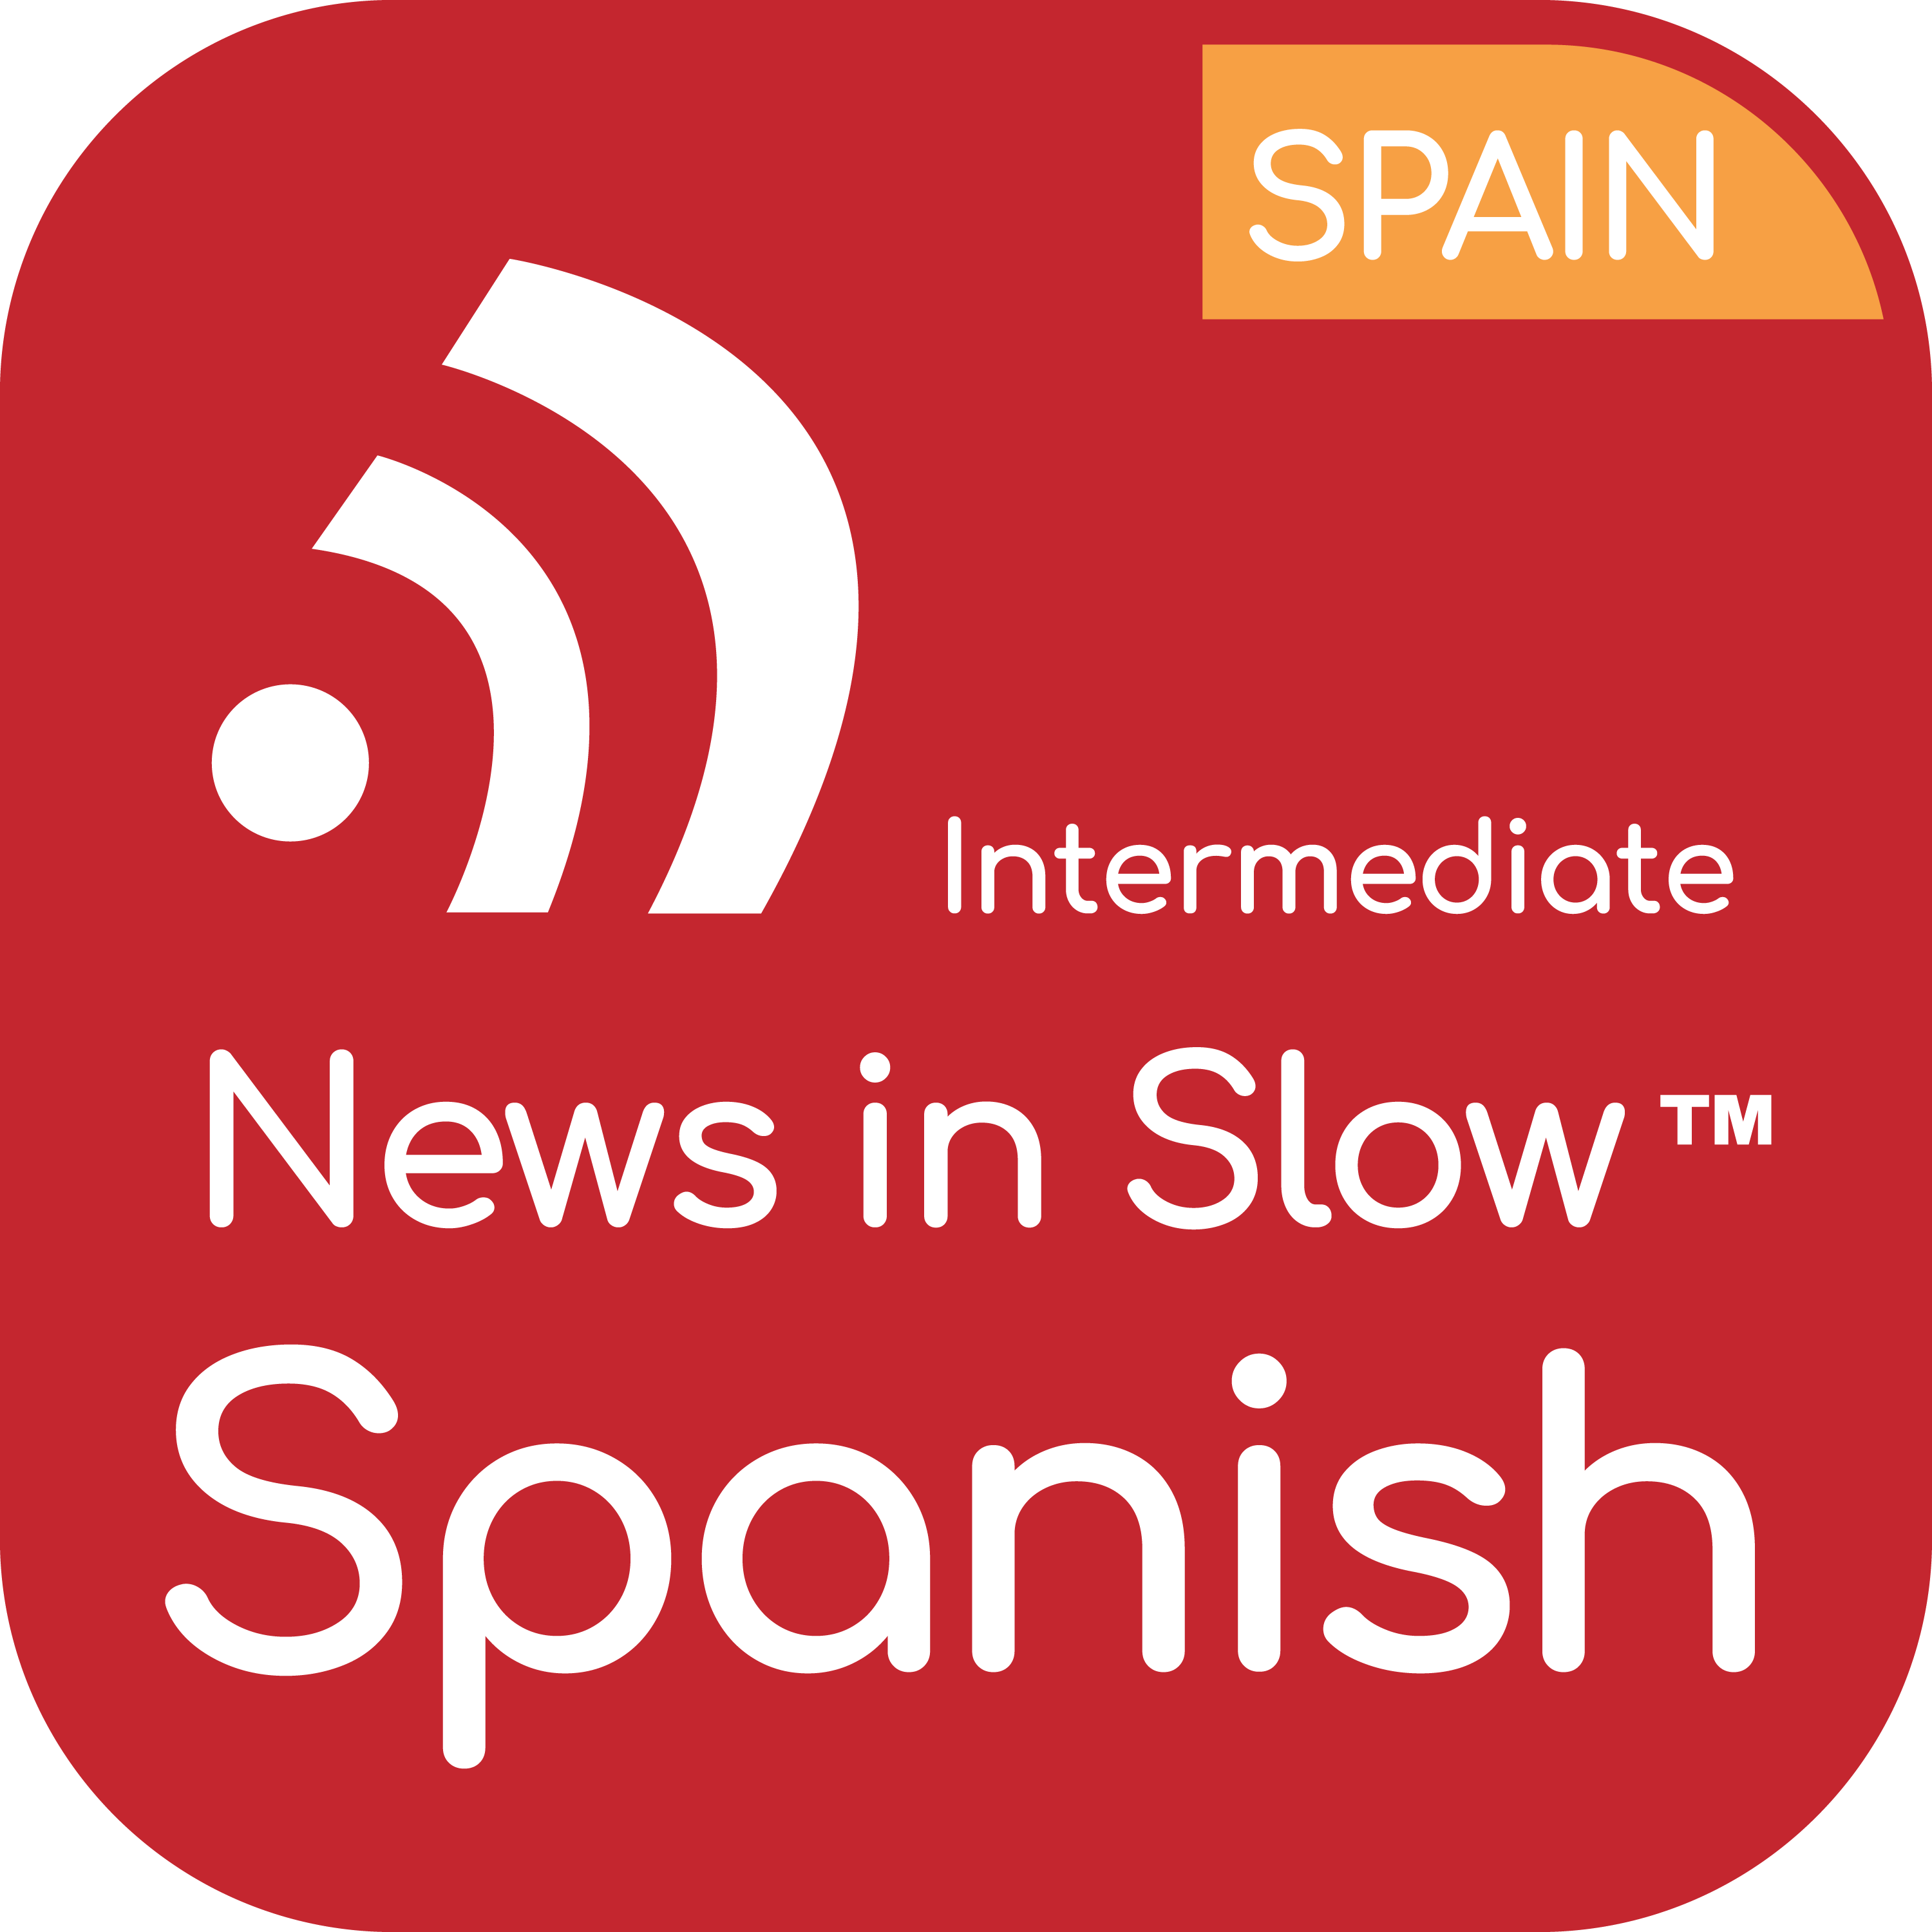 News in Slow Spanish - #565 - Learn Spanish through Current Events